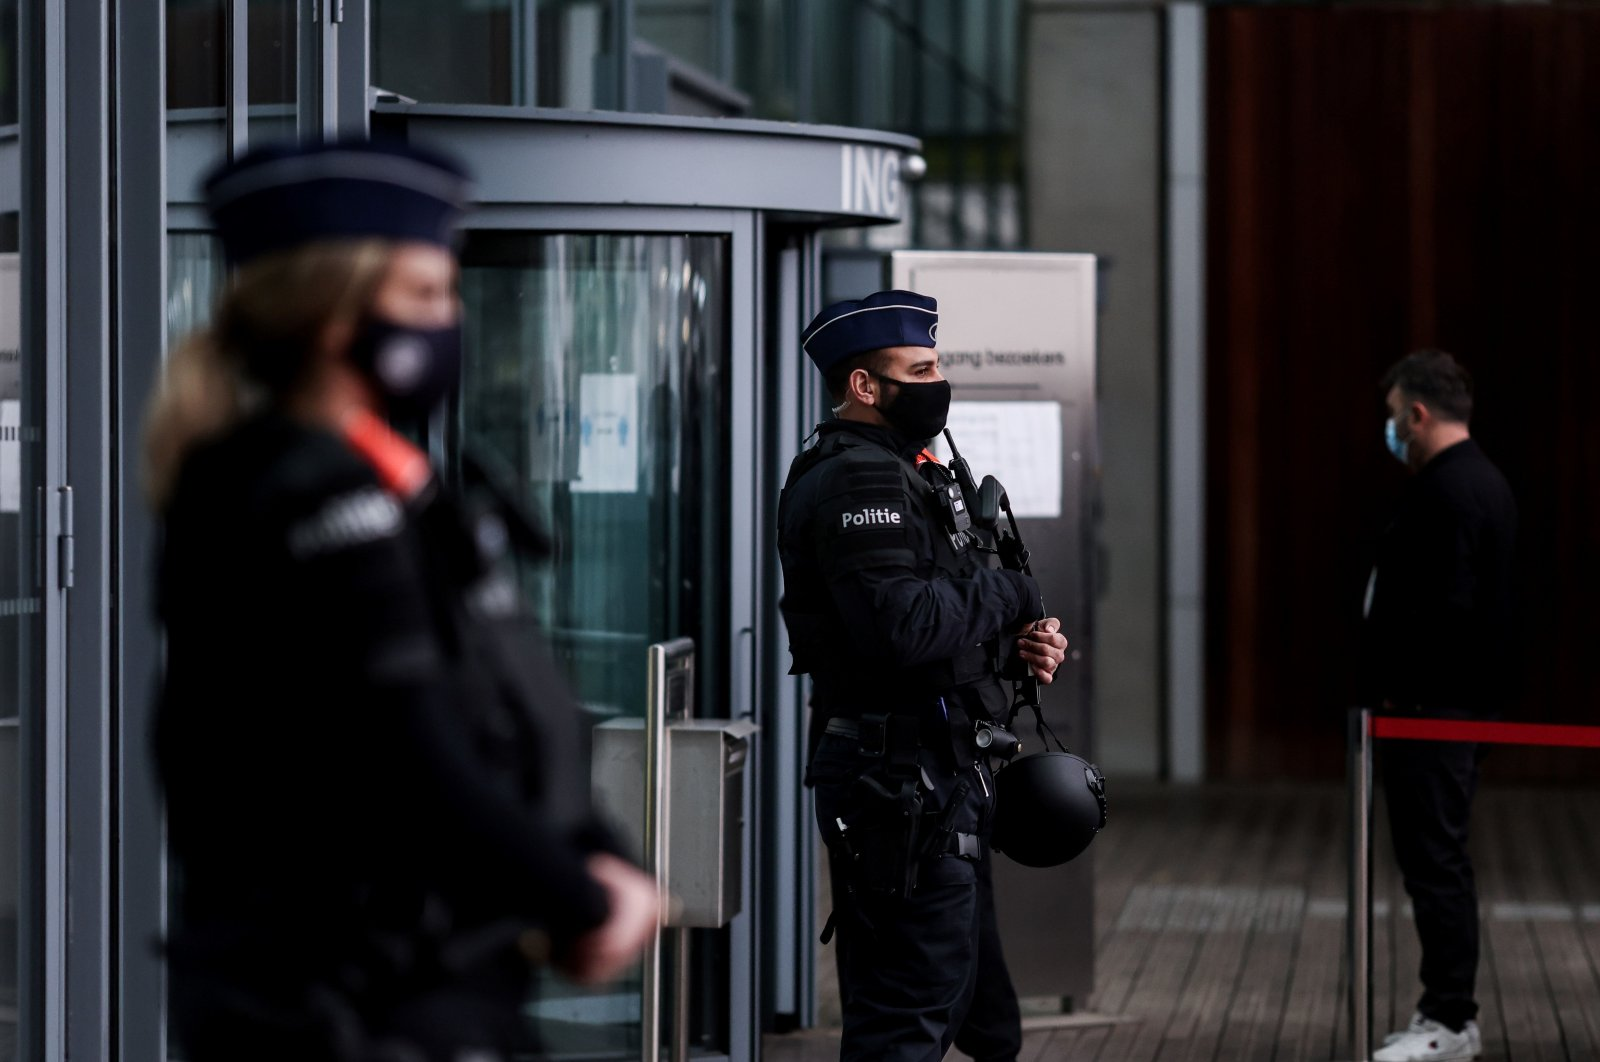 Belgian police officers stand guard at the entrance of an Antwerp courthouse, on Nov. 27, 2020, ahead of the start of the trial of four suspects including an Iranian diplomat accused of taking part in a plot to bomb an opposition rally. (AFP Photo)